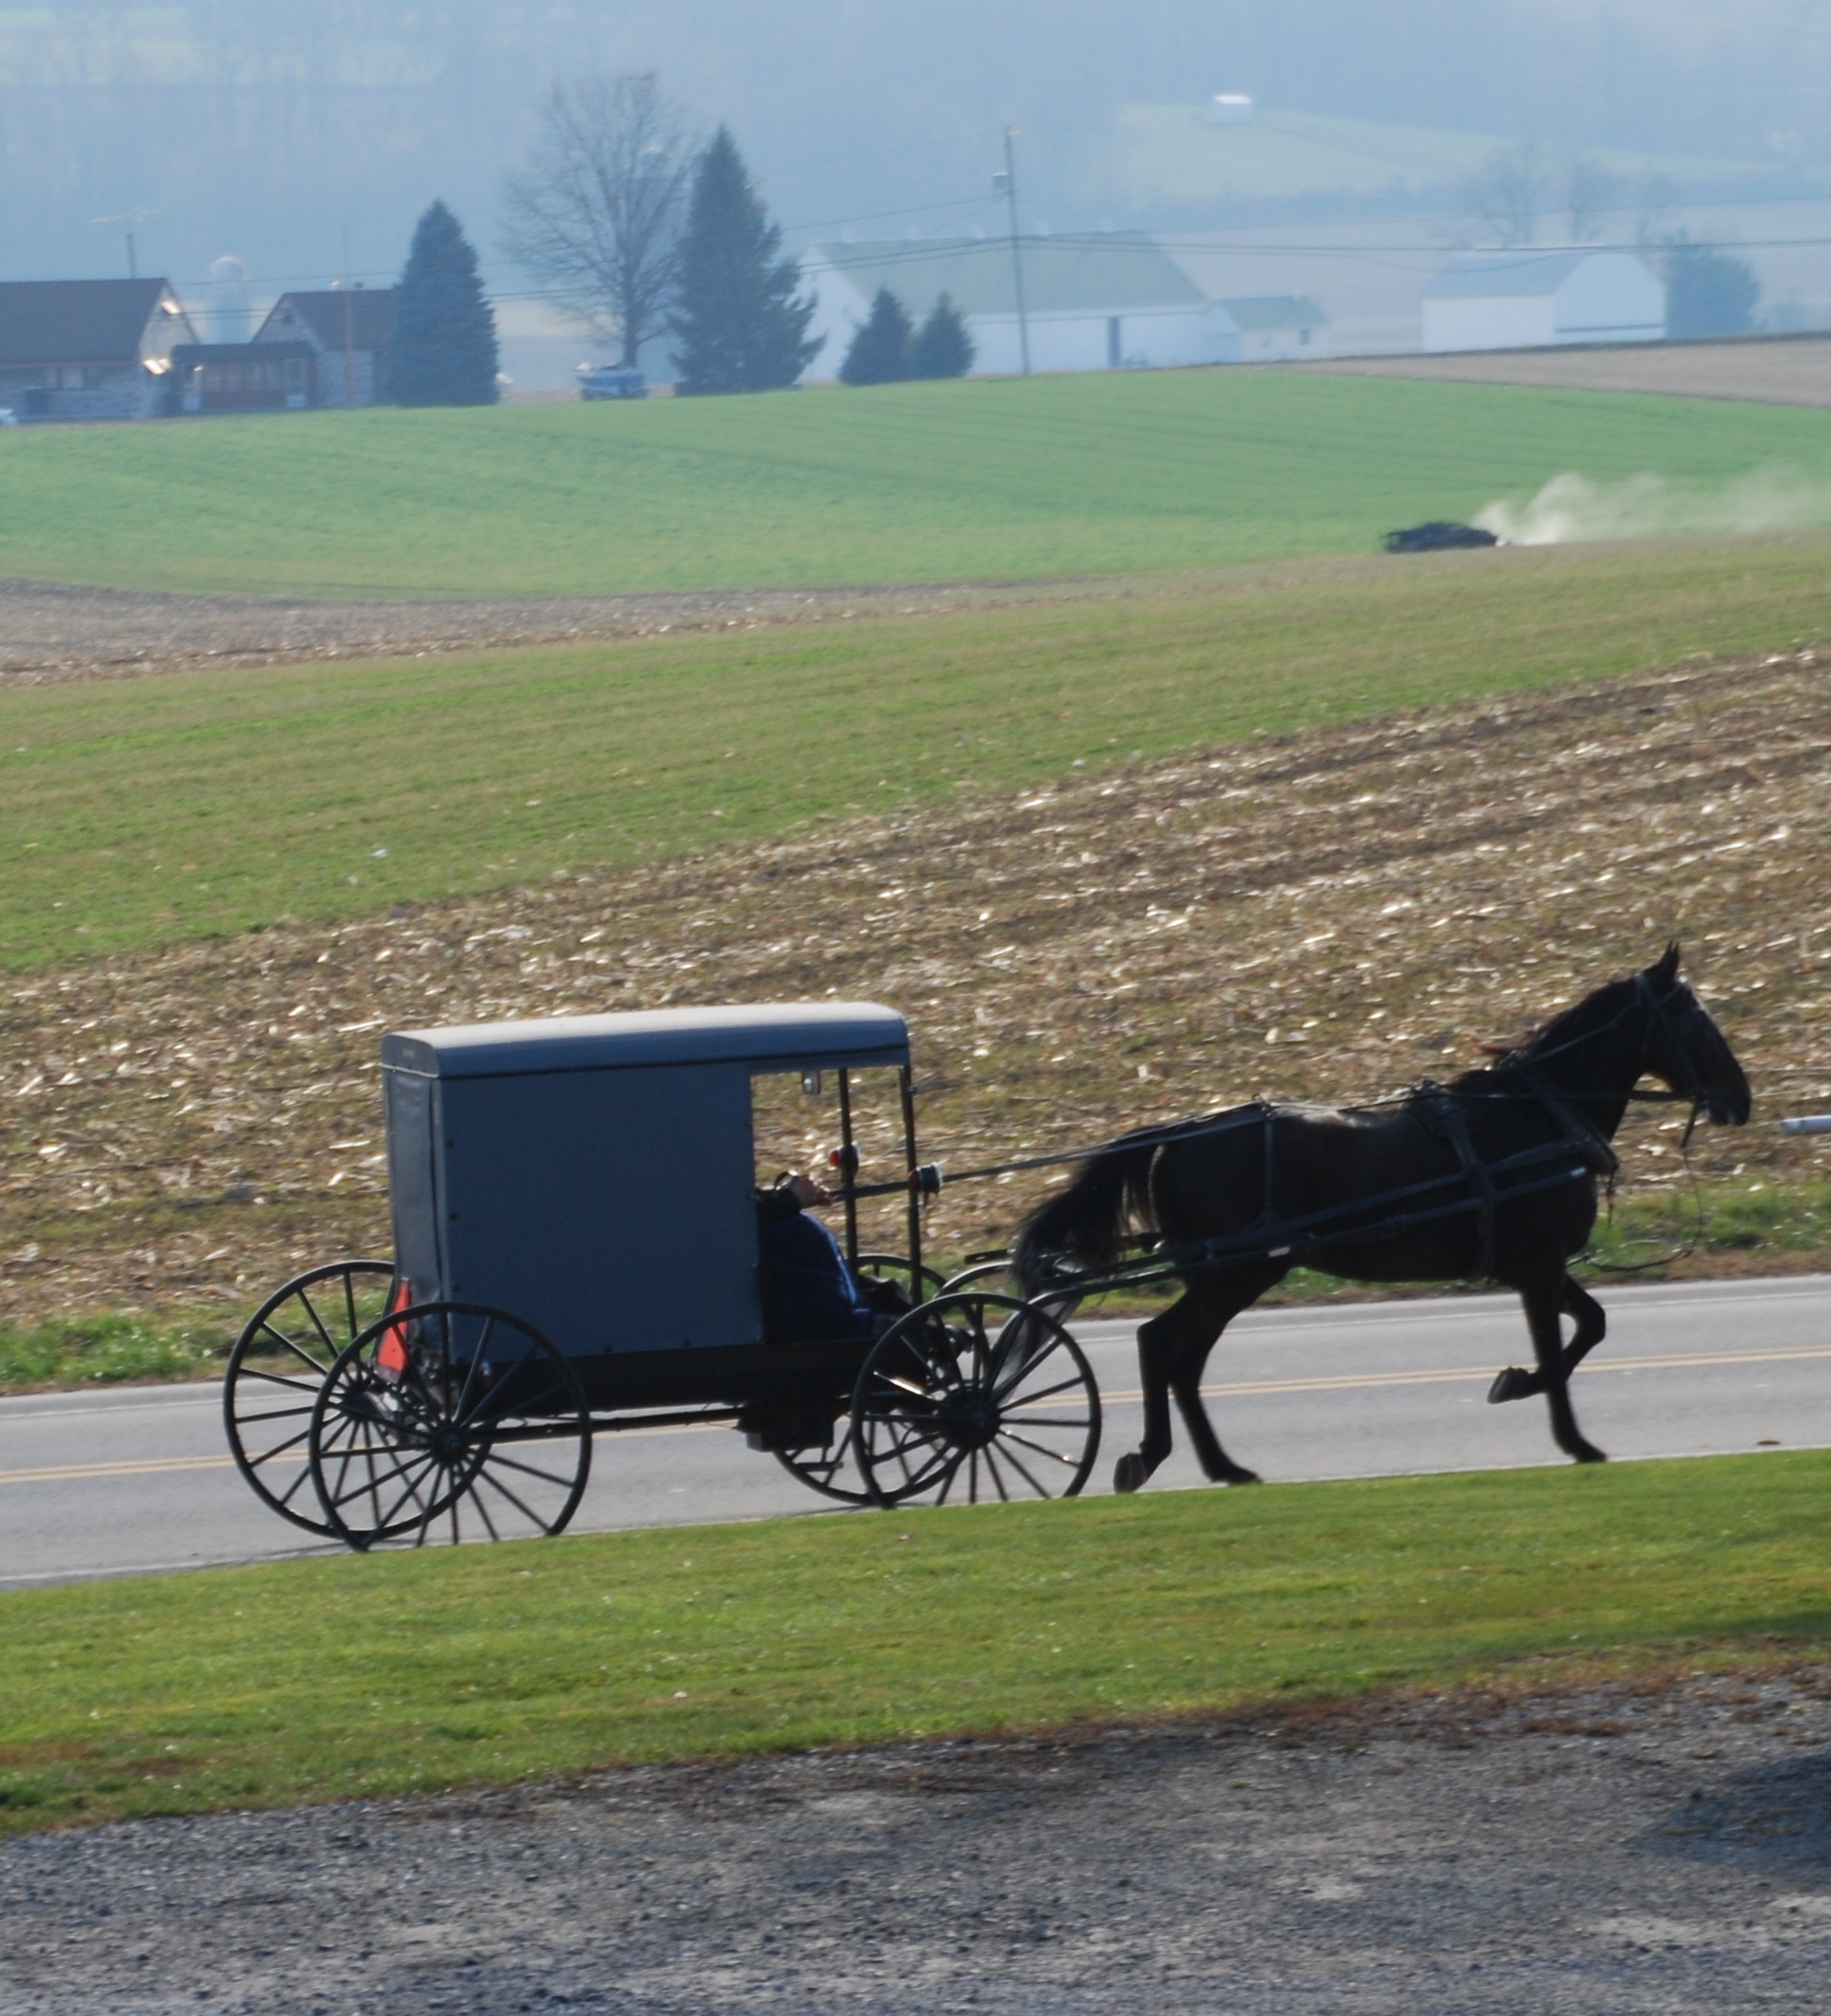 Amish buggy. Photo by Adina Senft